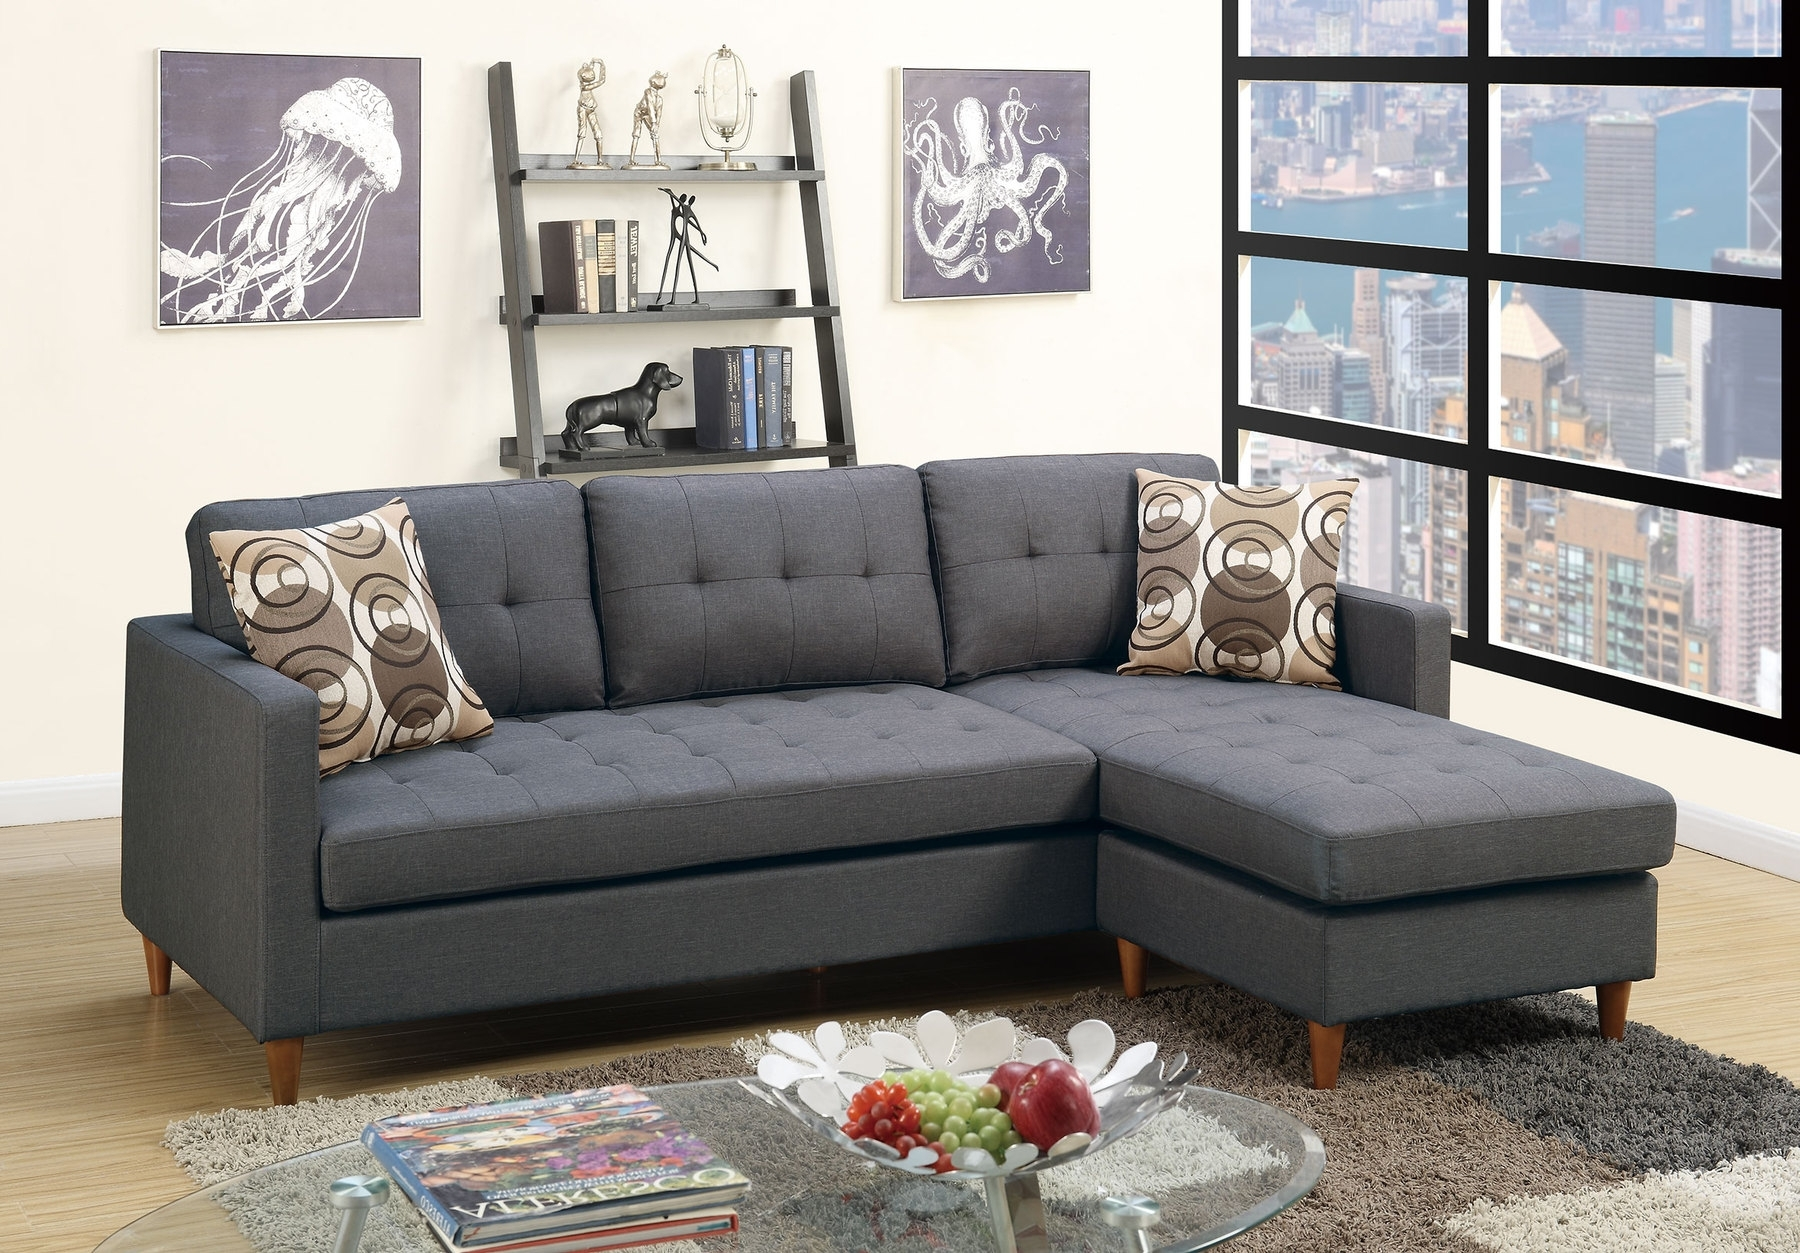 2018 P7094 Sectional Sofa 7094 Poundex Sectional Sofas At Comfyco In Gray Sectionals With Chaise (View 1 of 15)